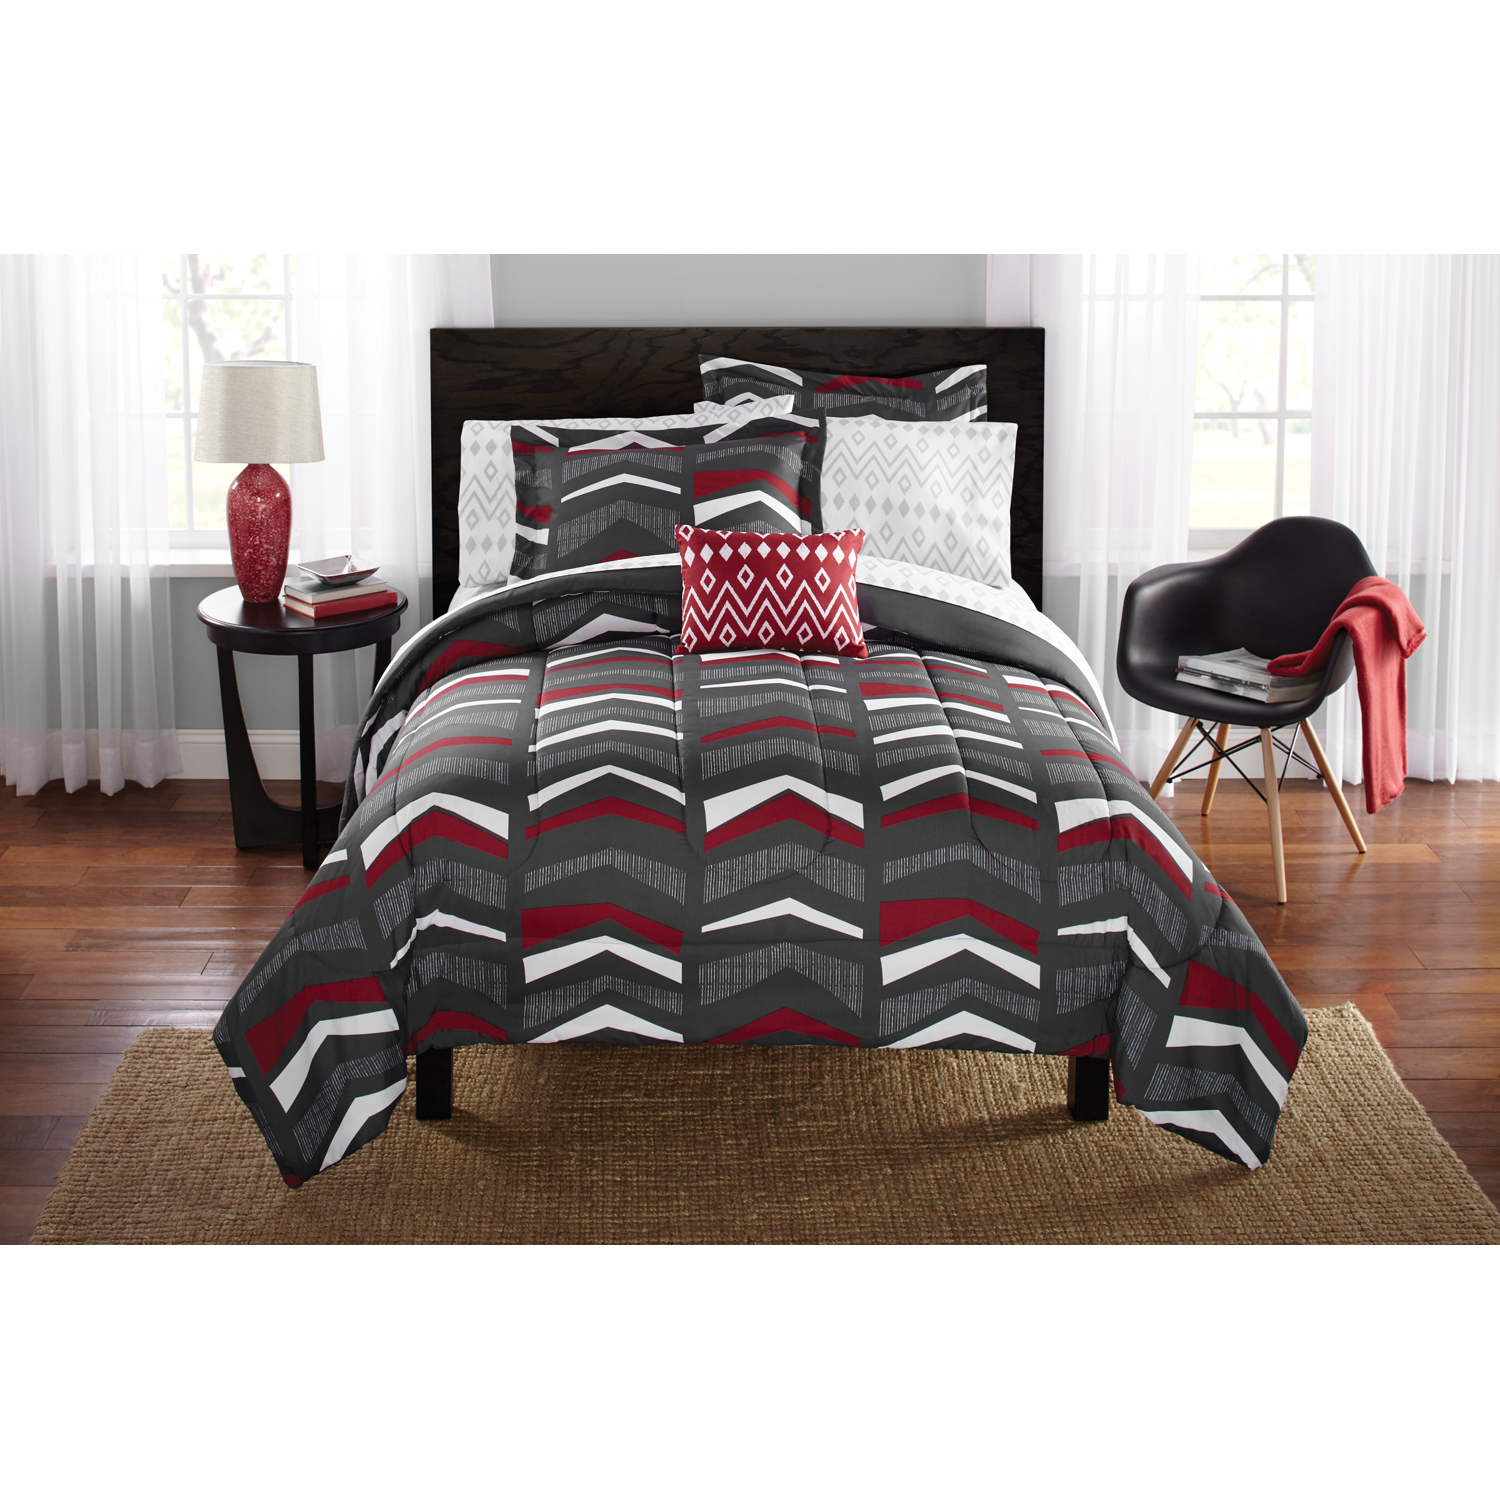 Mainstays Tribal Bed in a Bag Comforter Set